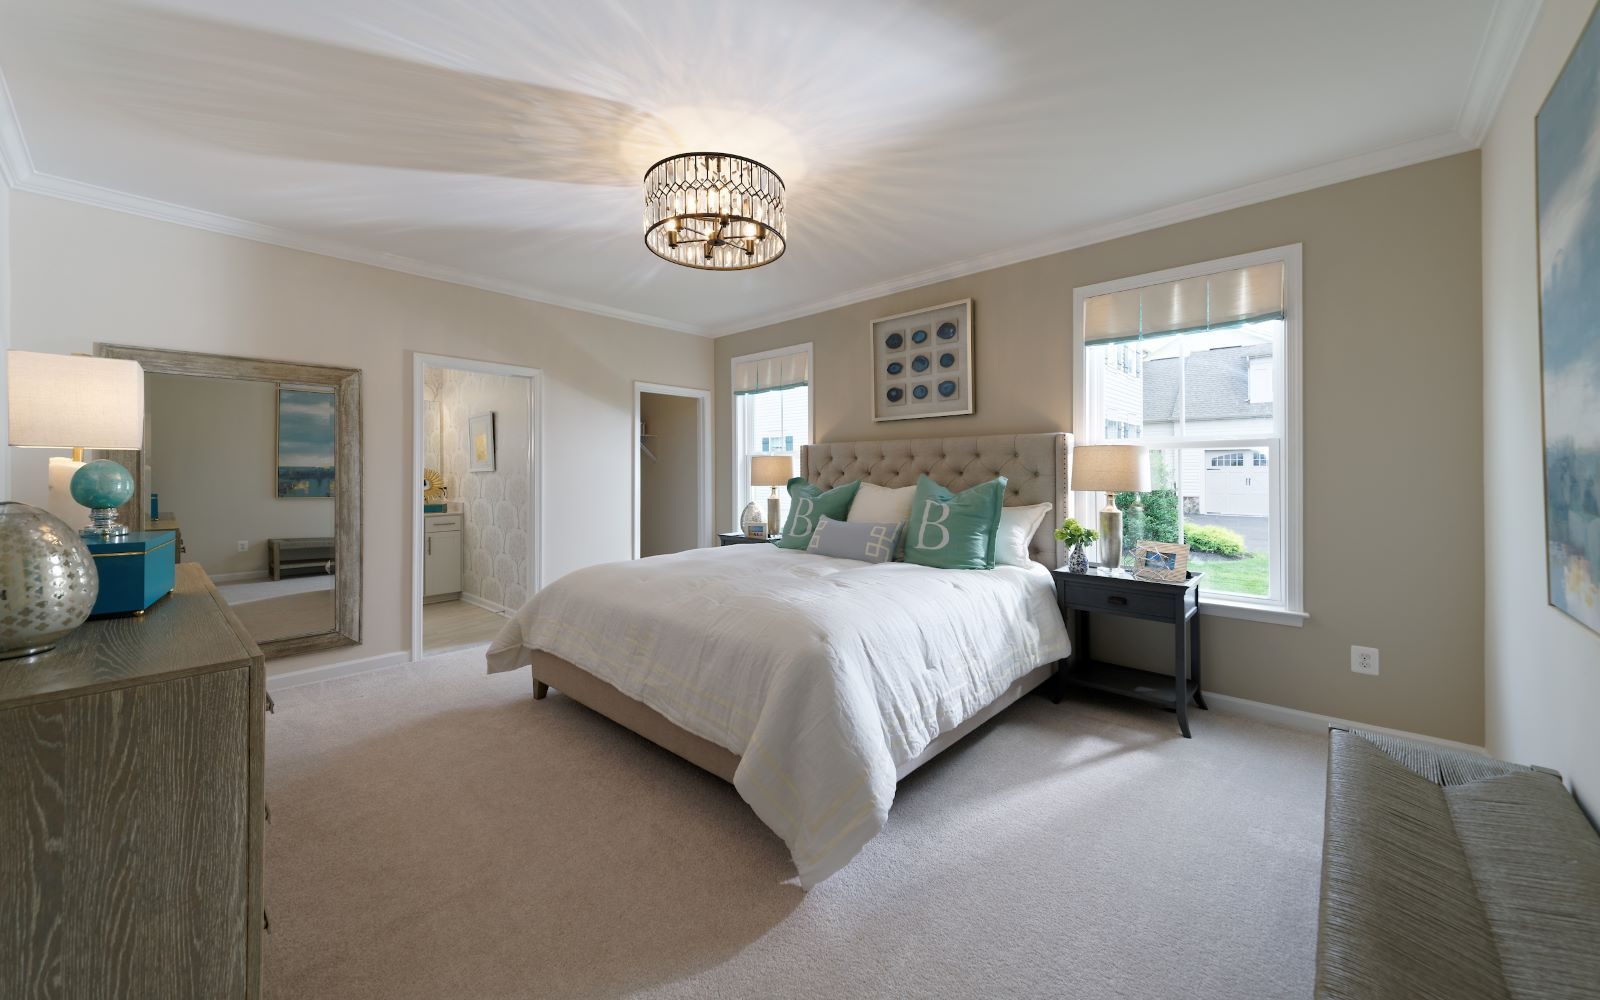 Bedroom featured in the Somerville By Brookfield Residential in Baltimore, MD